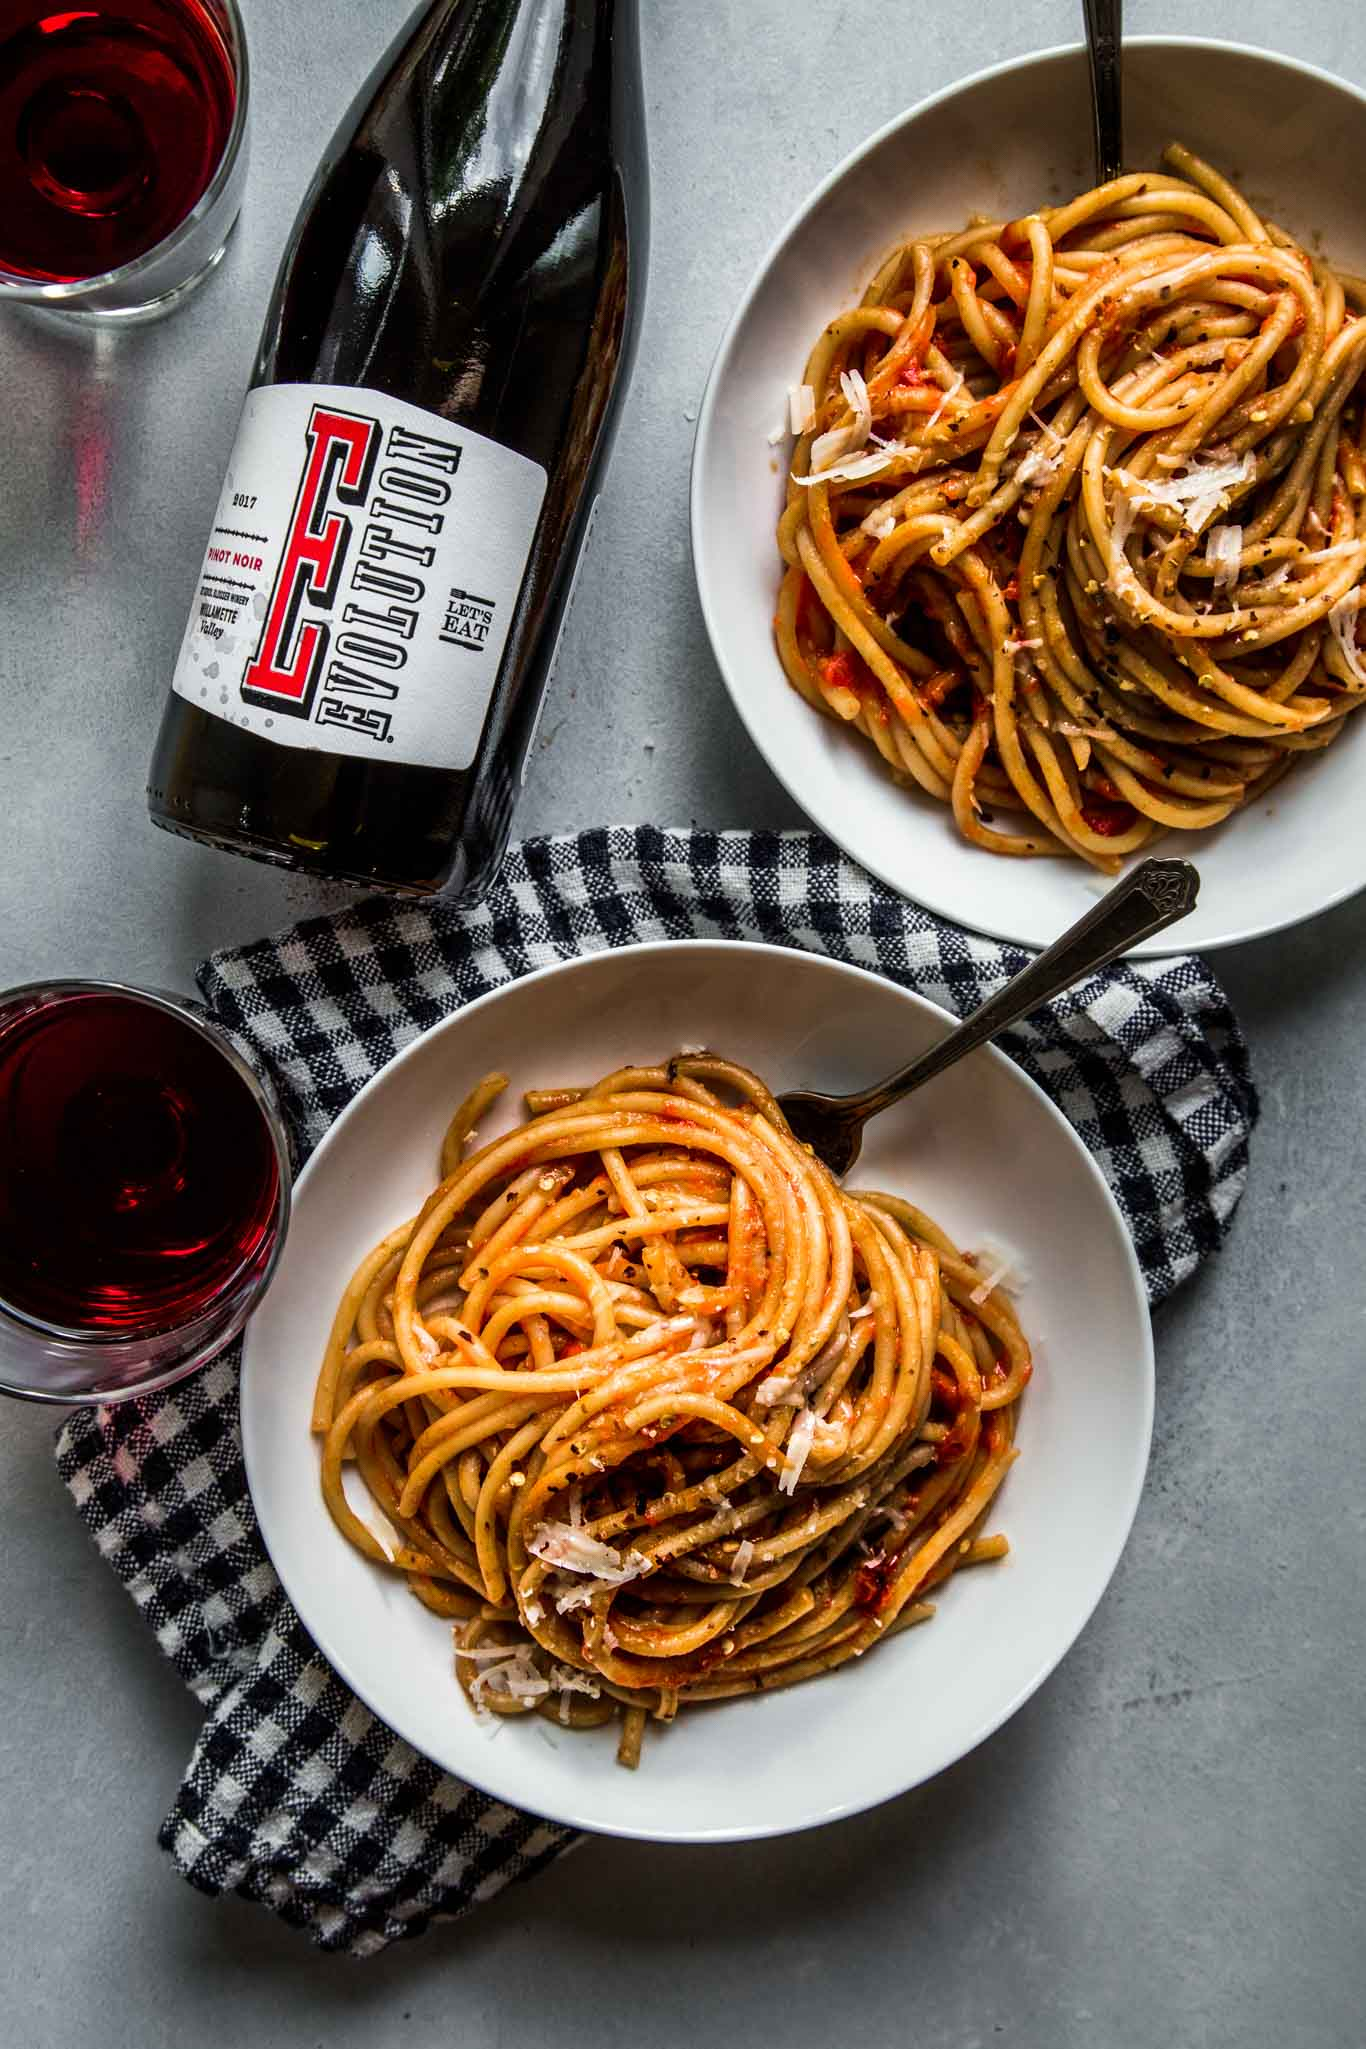 Two plates of pasta with roasted tomato sauce next to wine.